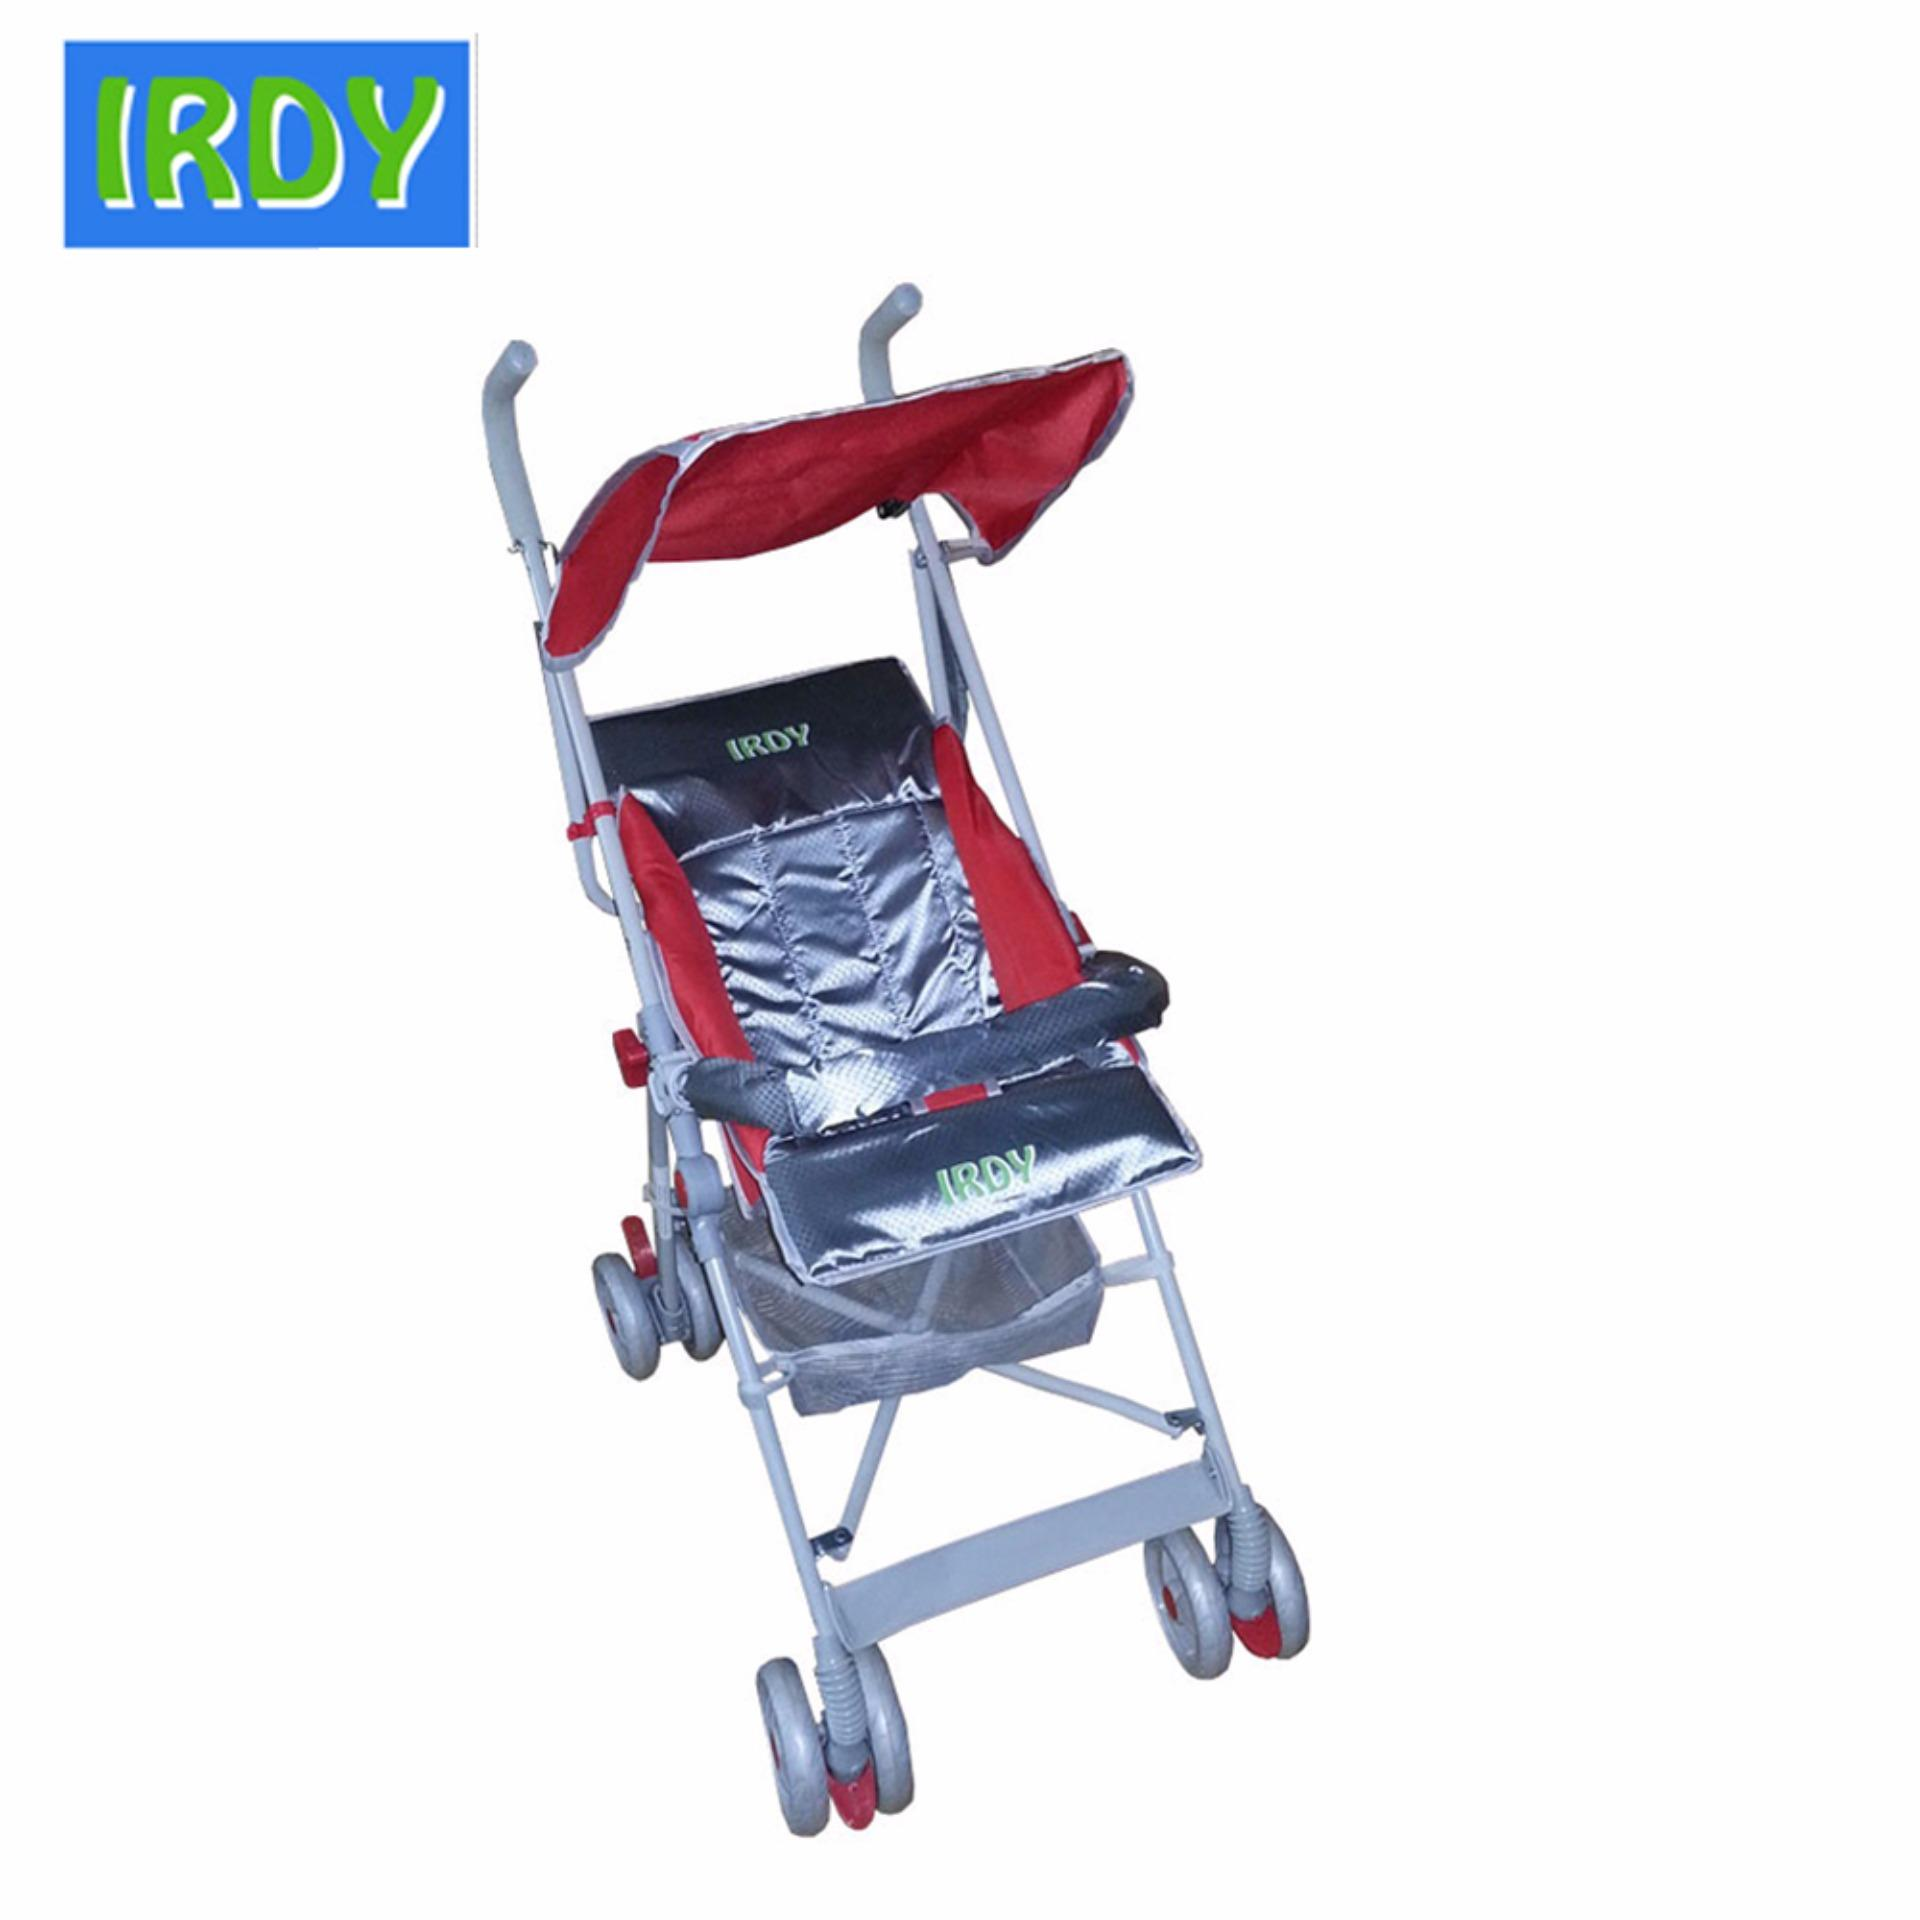 Crib for sale bacolod - Irdy S 770ab 2 Way Umbrella Stroller With Safety Bar Red